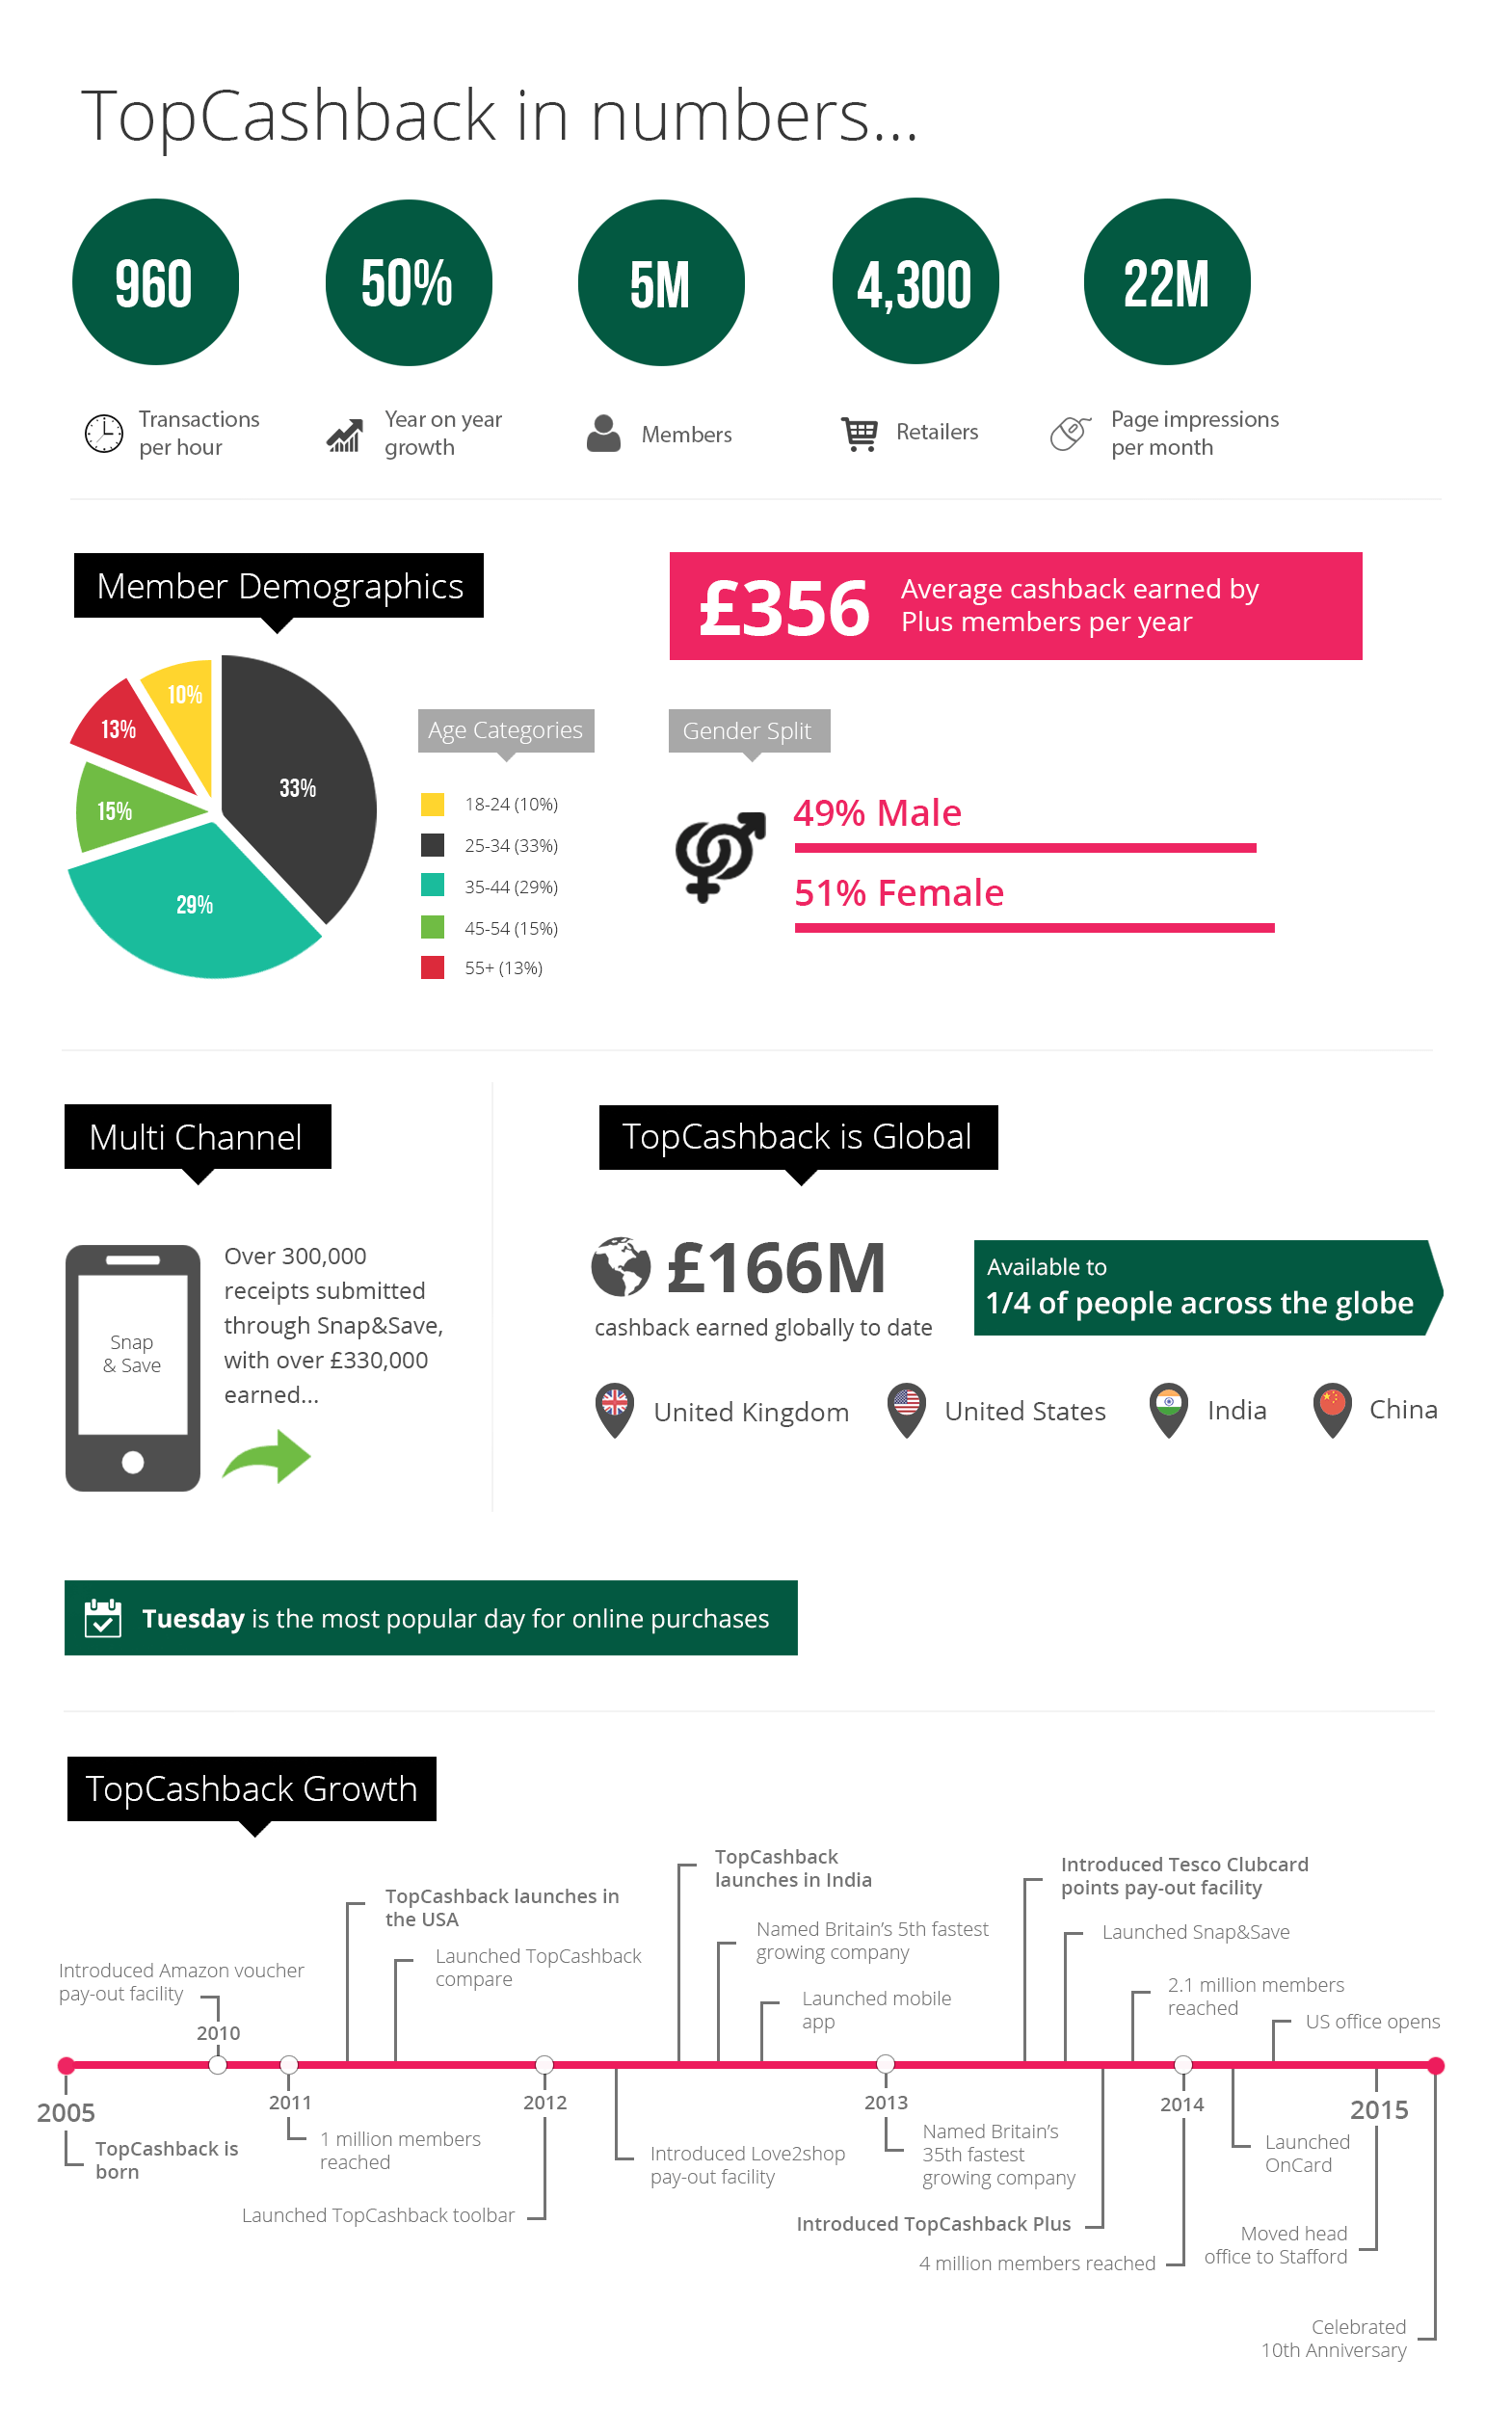 TopCashback in numbers